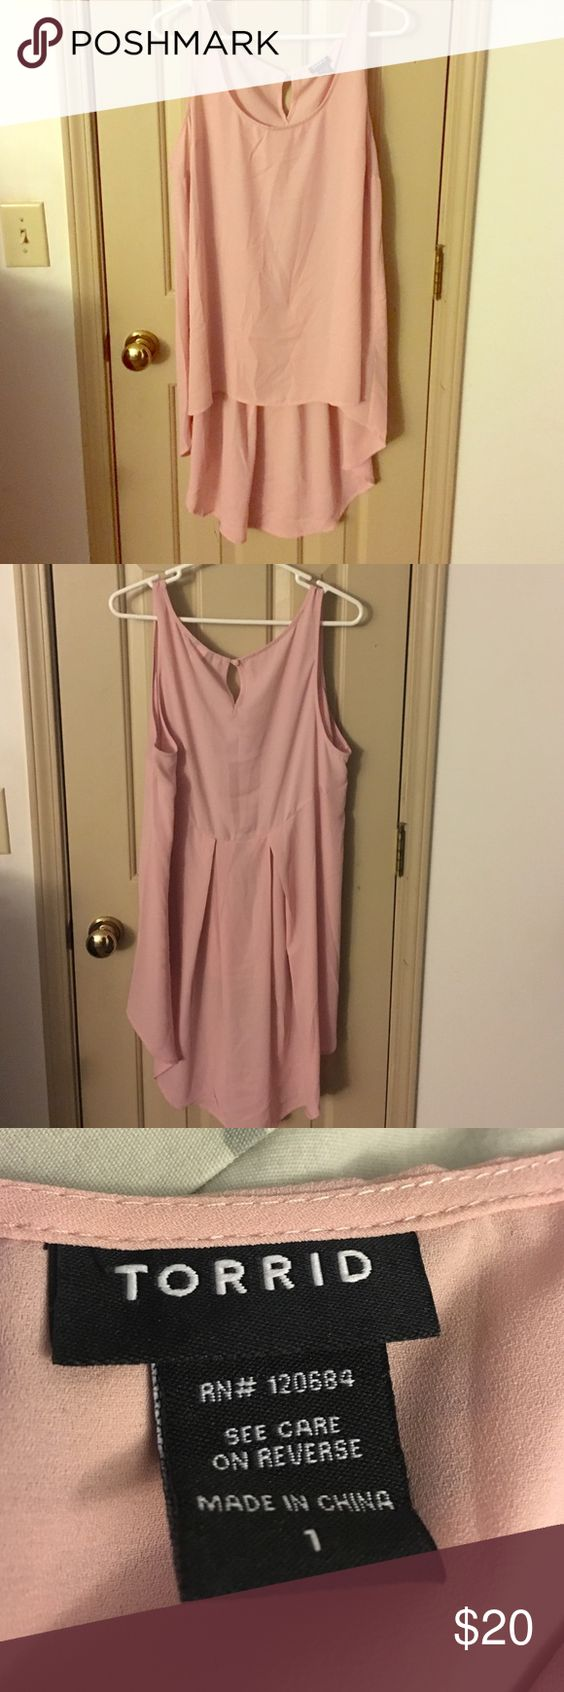 Blush Torrid hi lo tank Cute blush tank from Torrid with hi lo cut. Great with a pair of heels and Jeggings. Worn one time to opening night event. torrid Tops